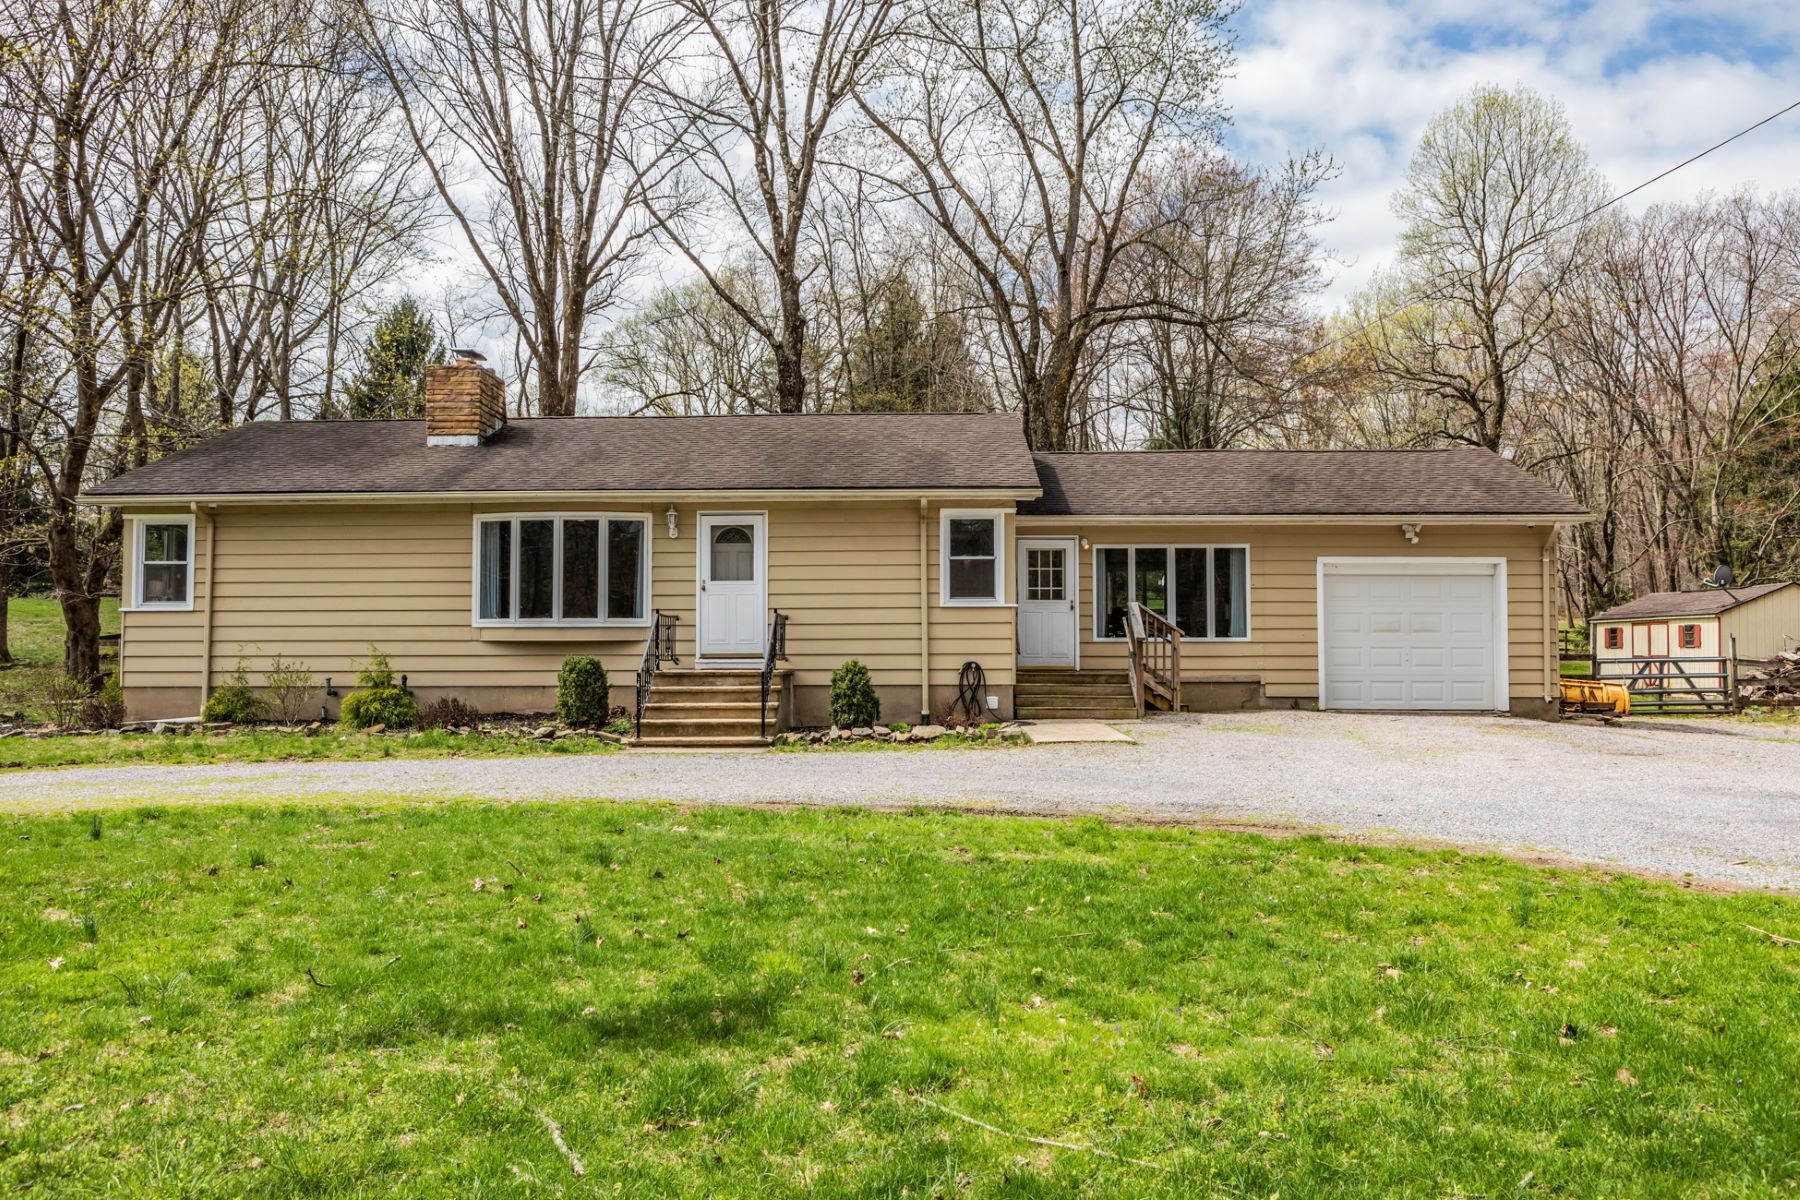 Single Family Home for Sale at A Modern Reinvention Both Inside And Out 87 Old Croton Road, Flemington, New Jersey 08822 United States